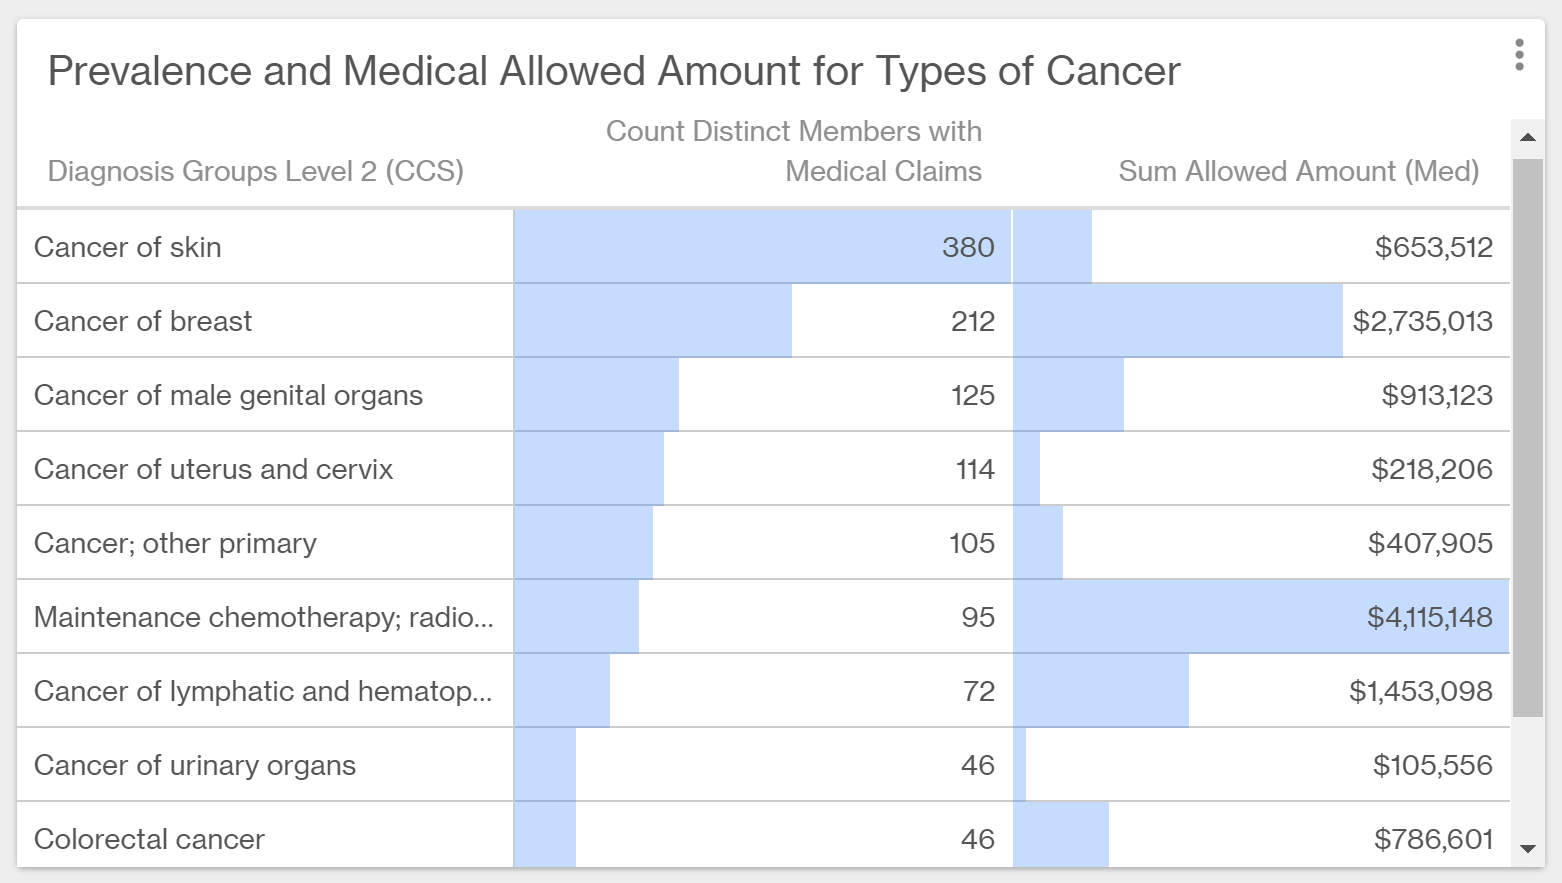 Table with specific types of cancer and how many members are affected.